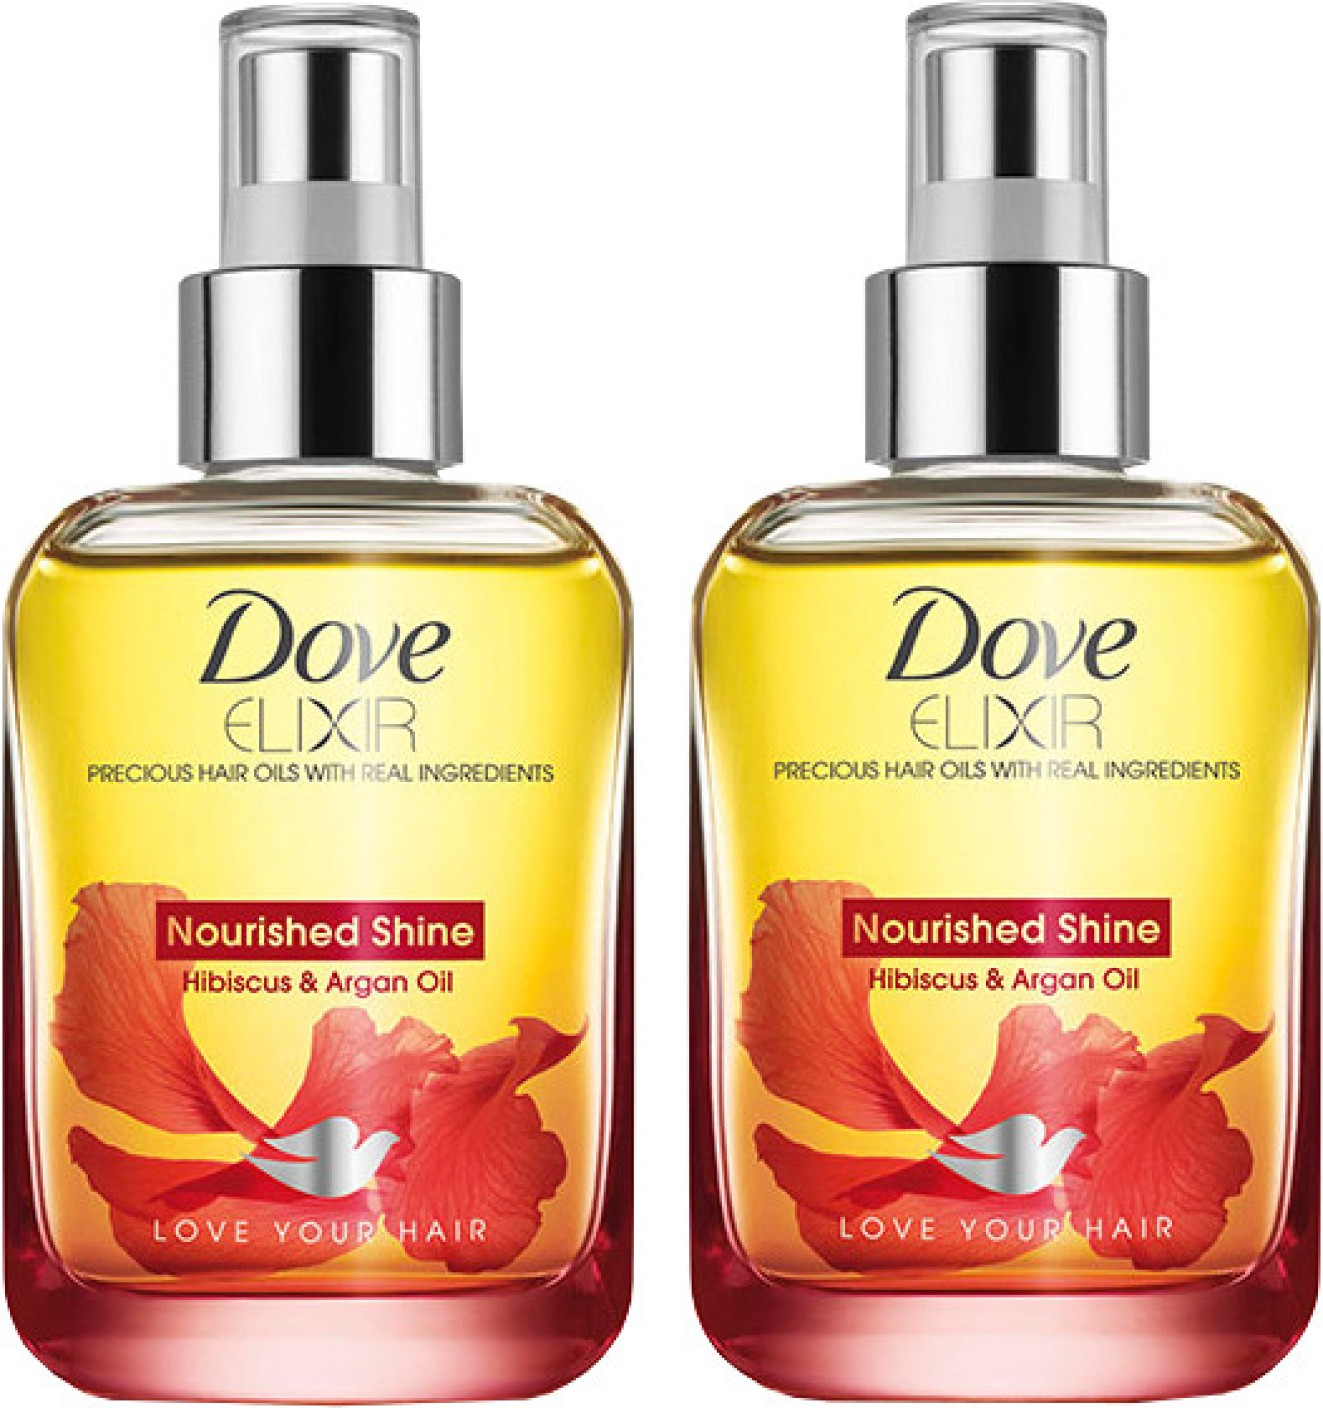 Dove Elixir Nourished Shine Hibiscus and Argan Hair Oil